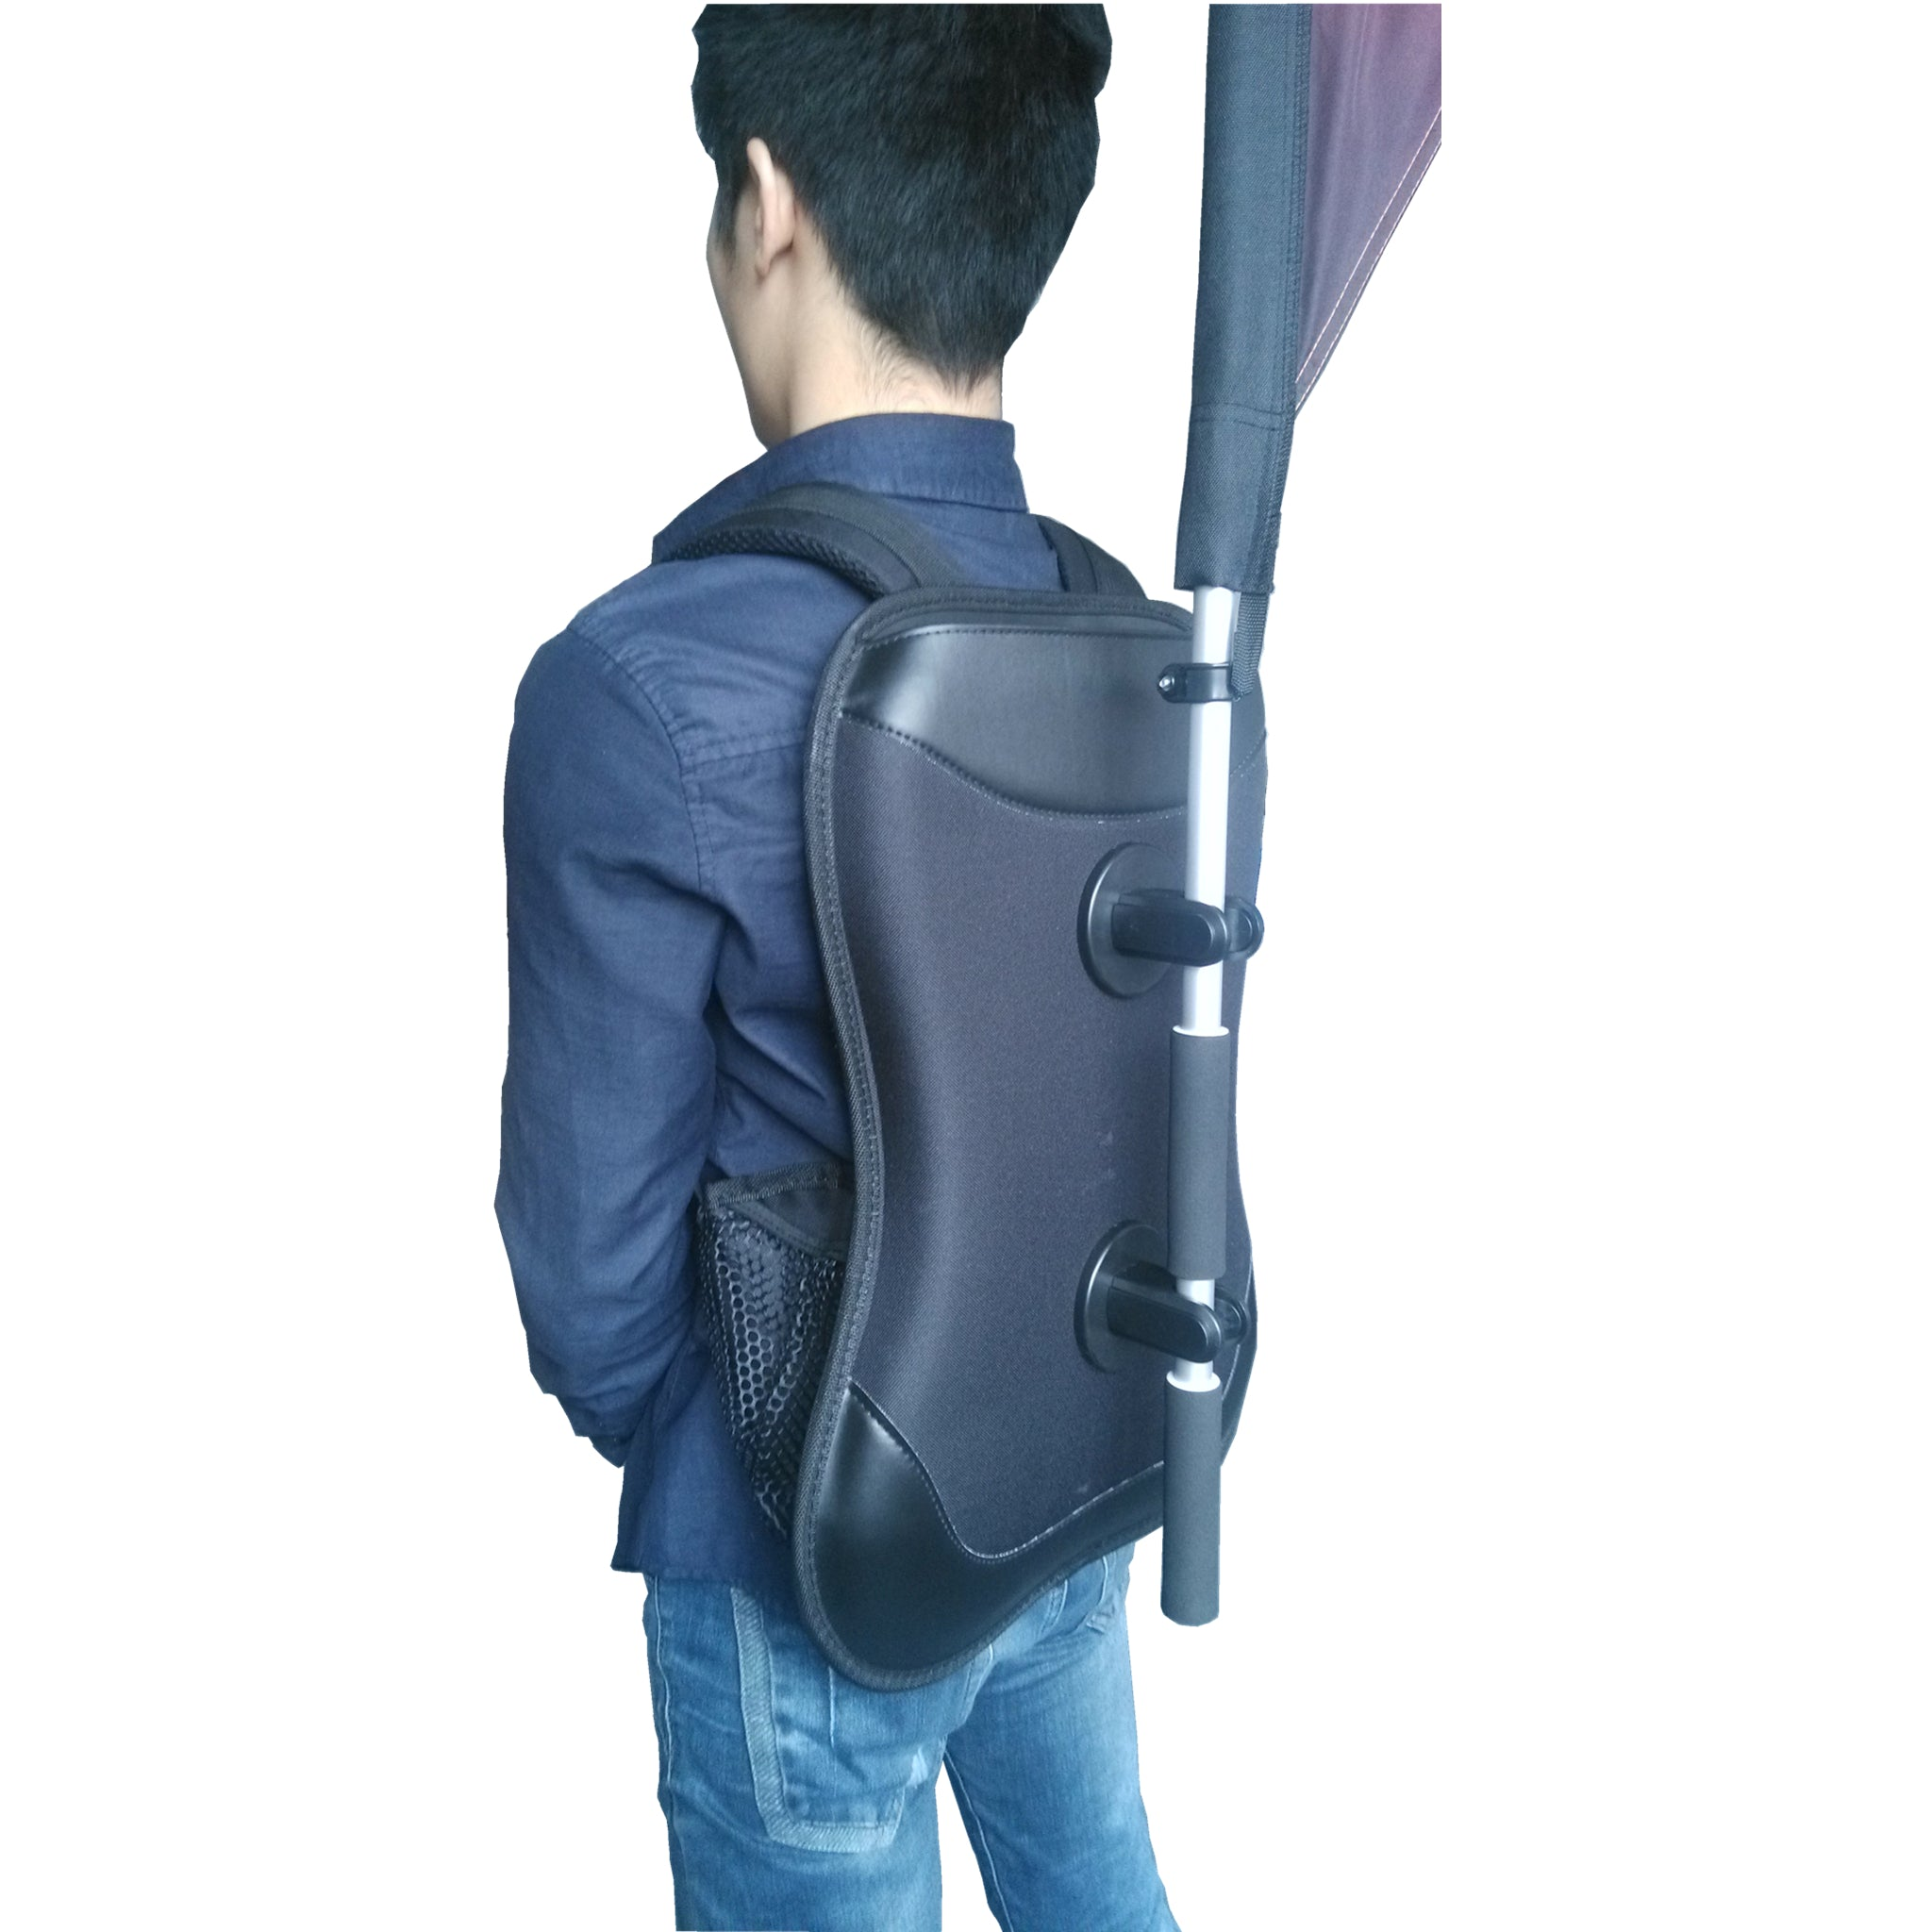 Backpack With Harness For Carrying Banners Flags